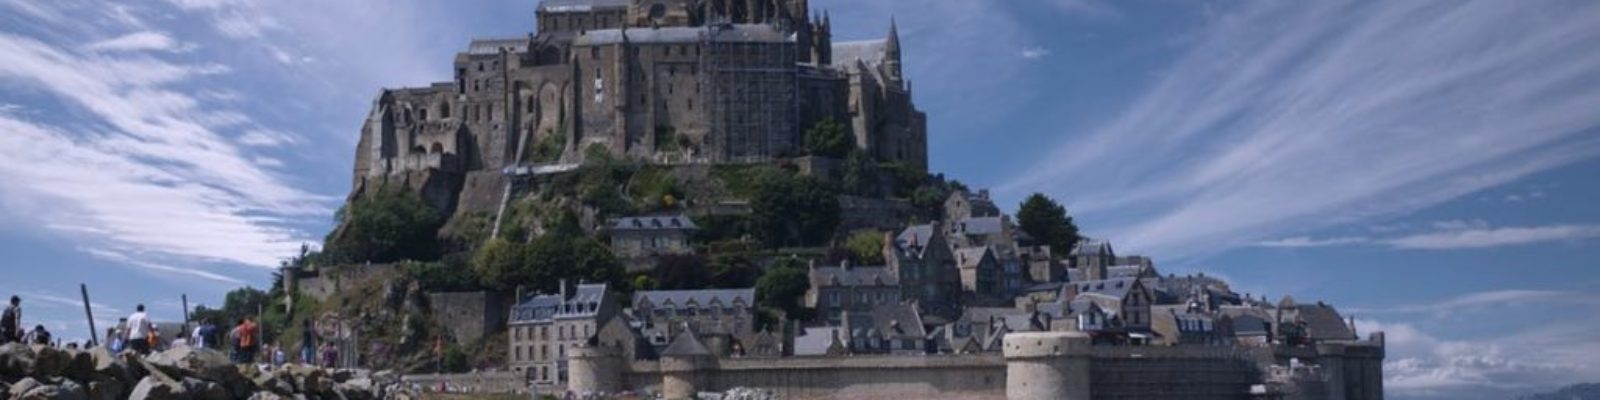 mont saint michel france normandy europe 1